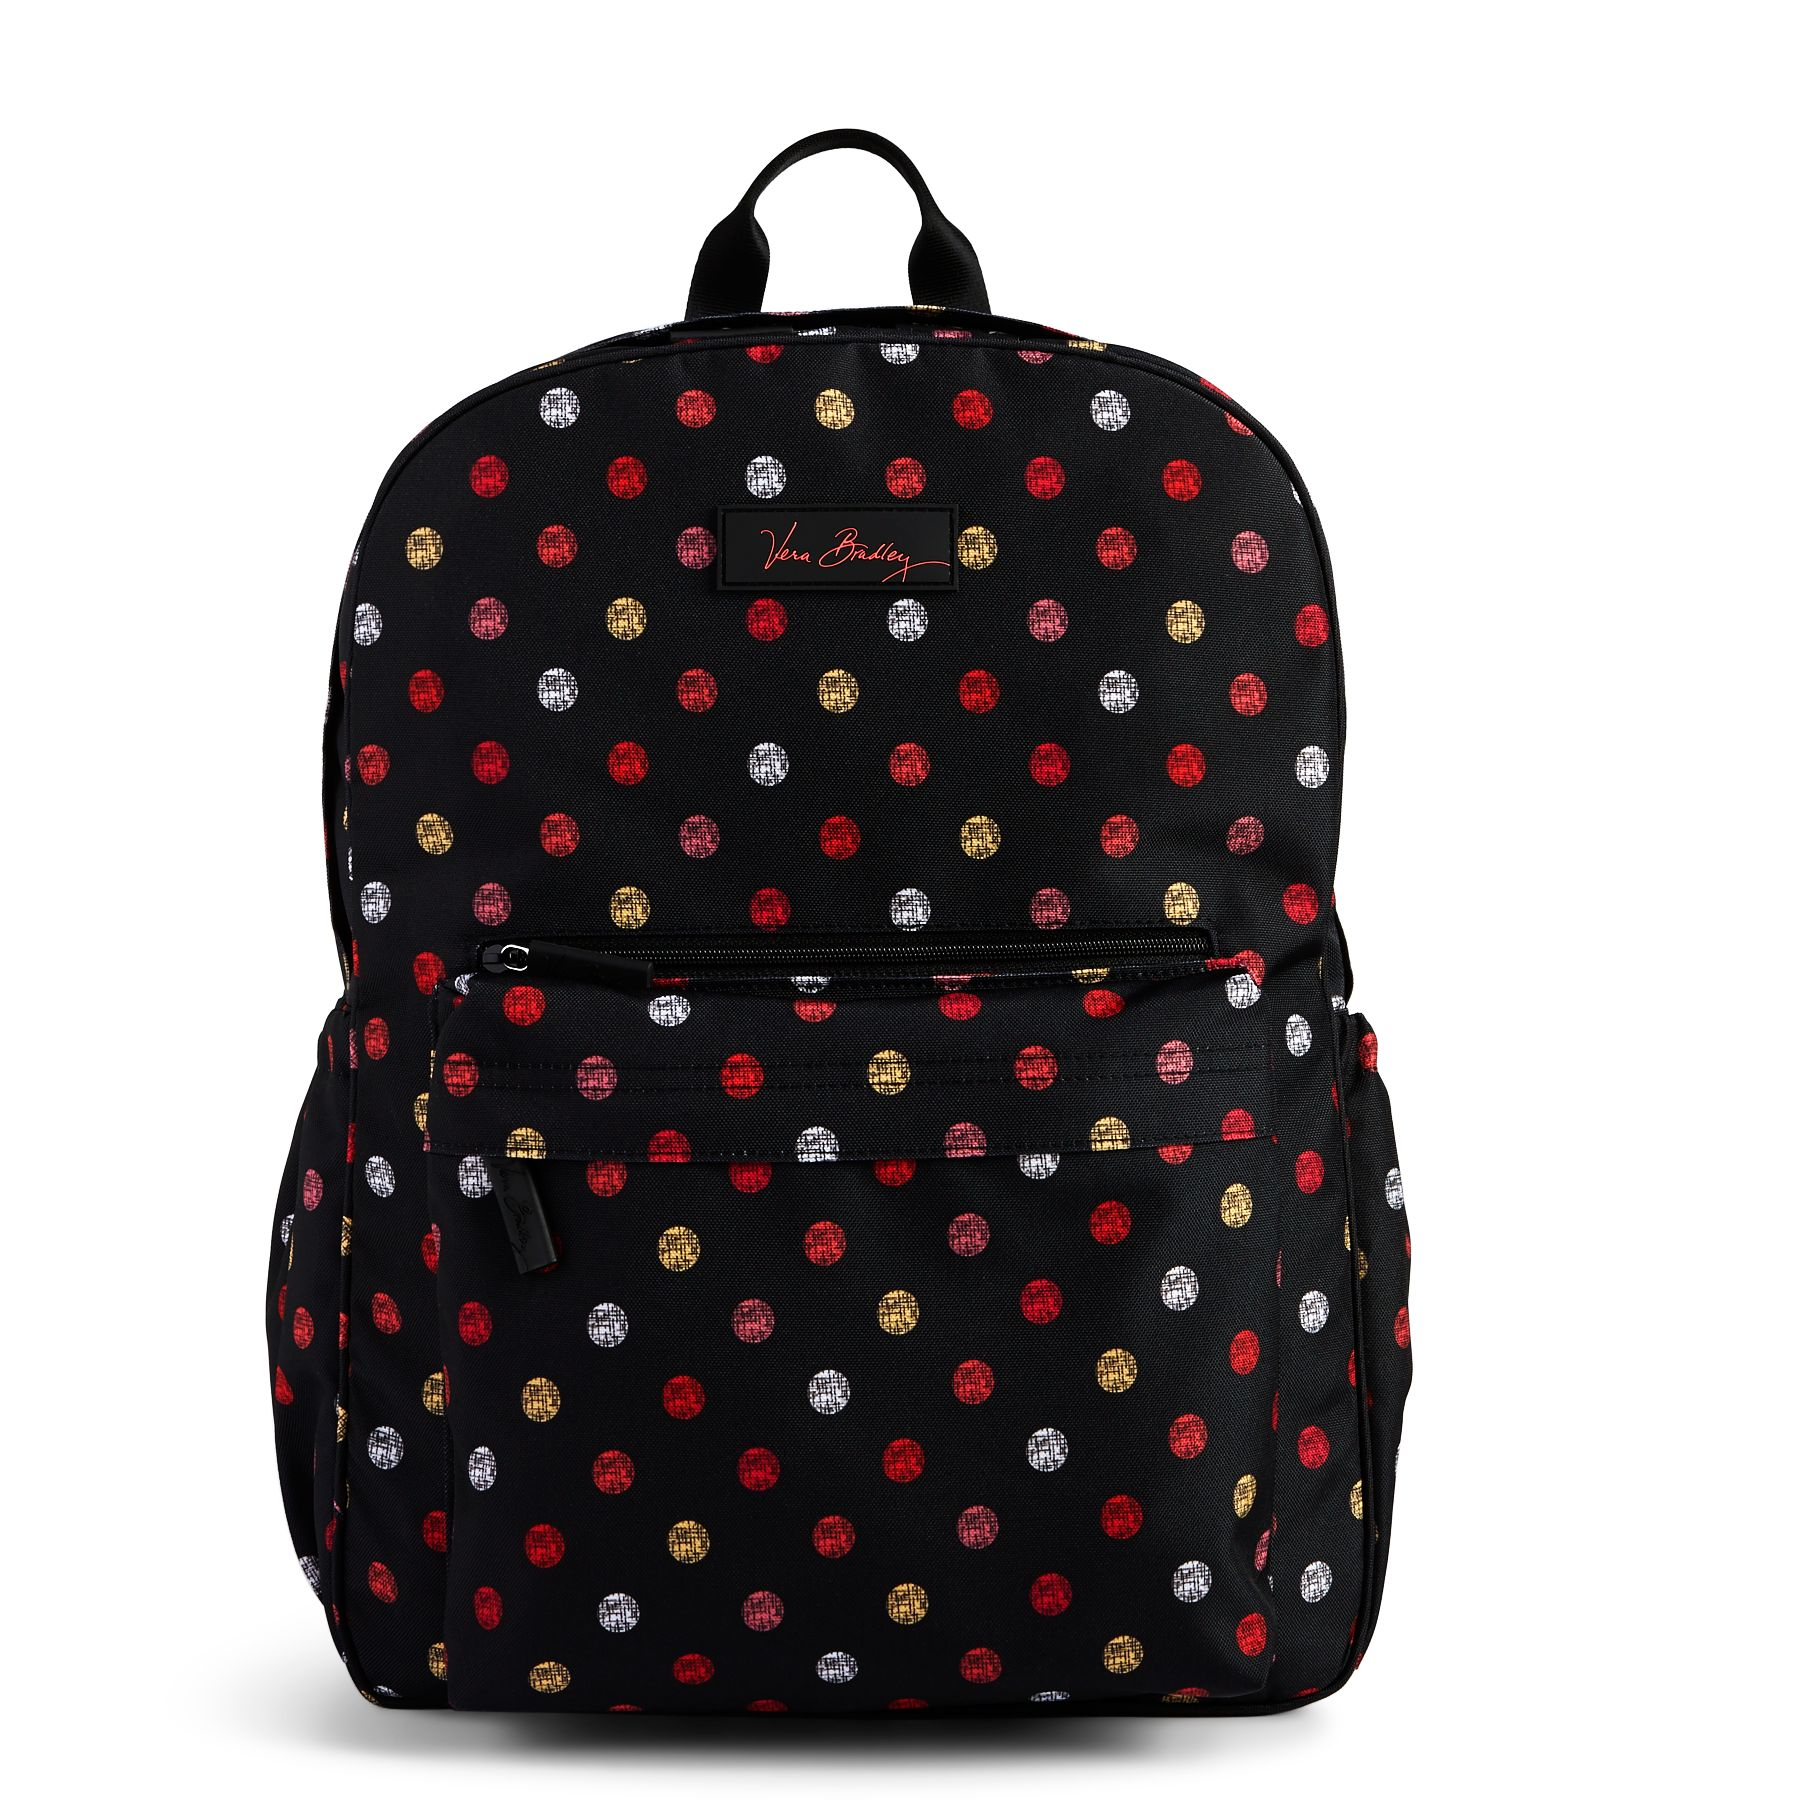 Permalink to How To Clean A Vera Bradley Backpack